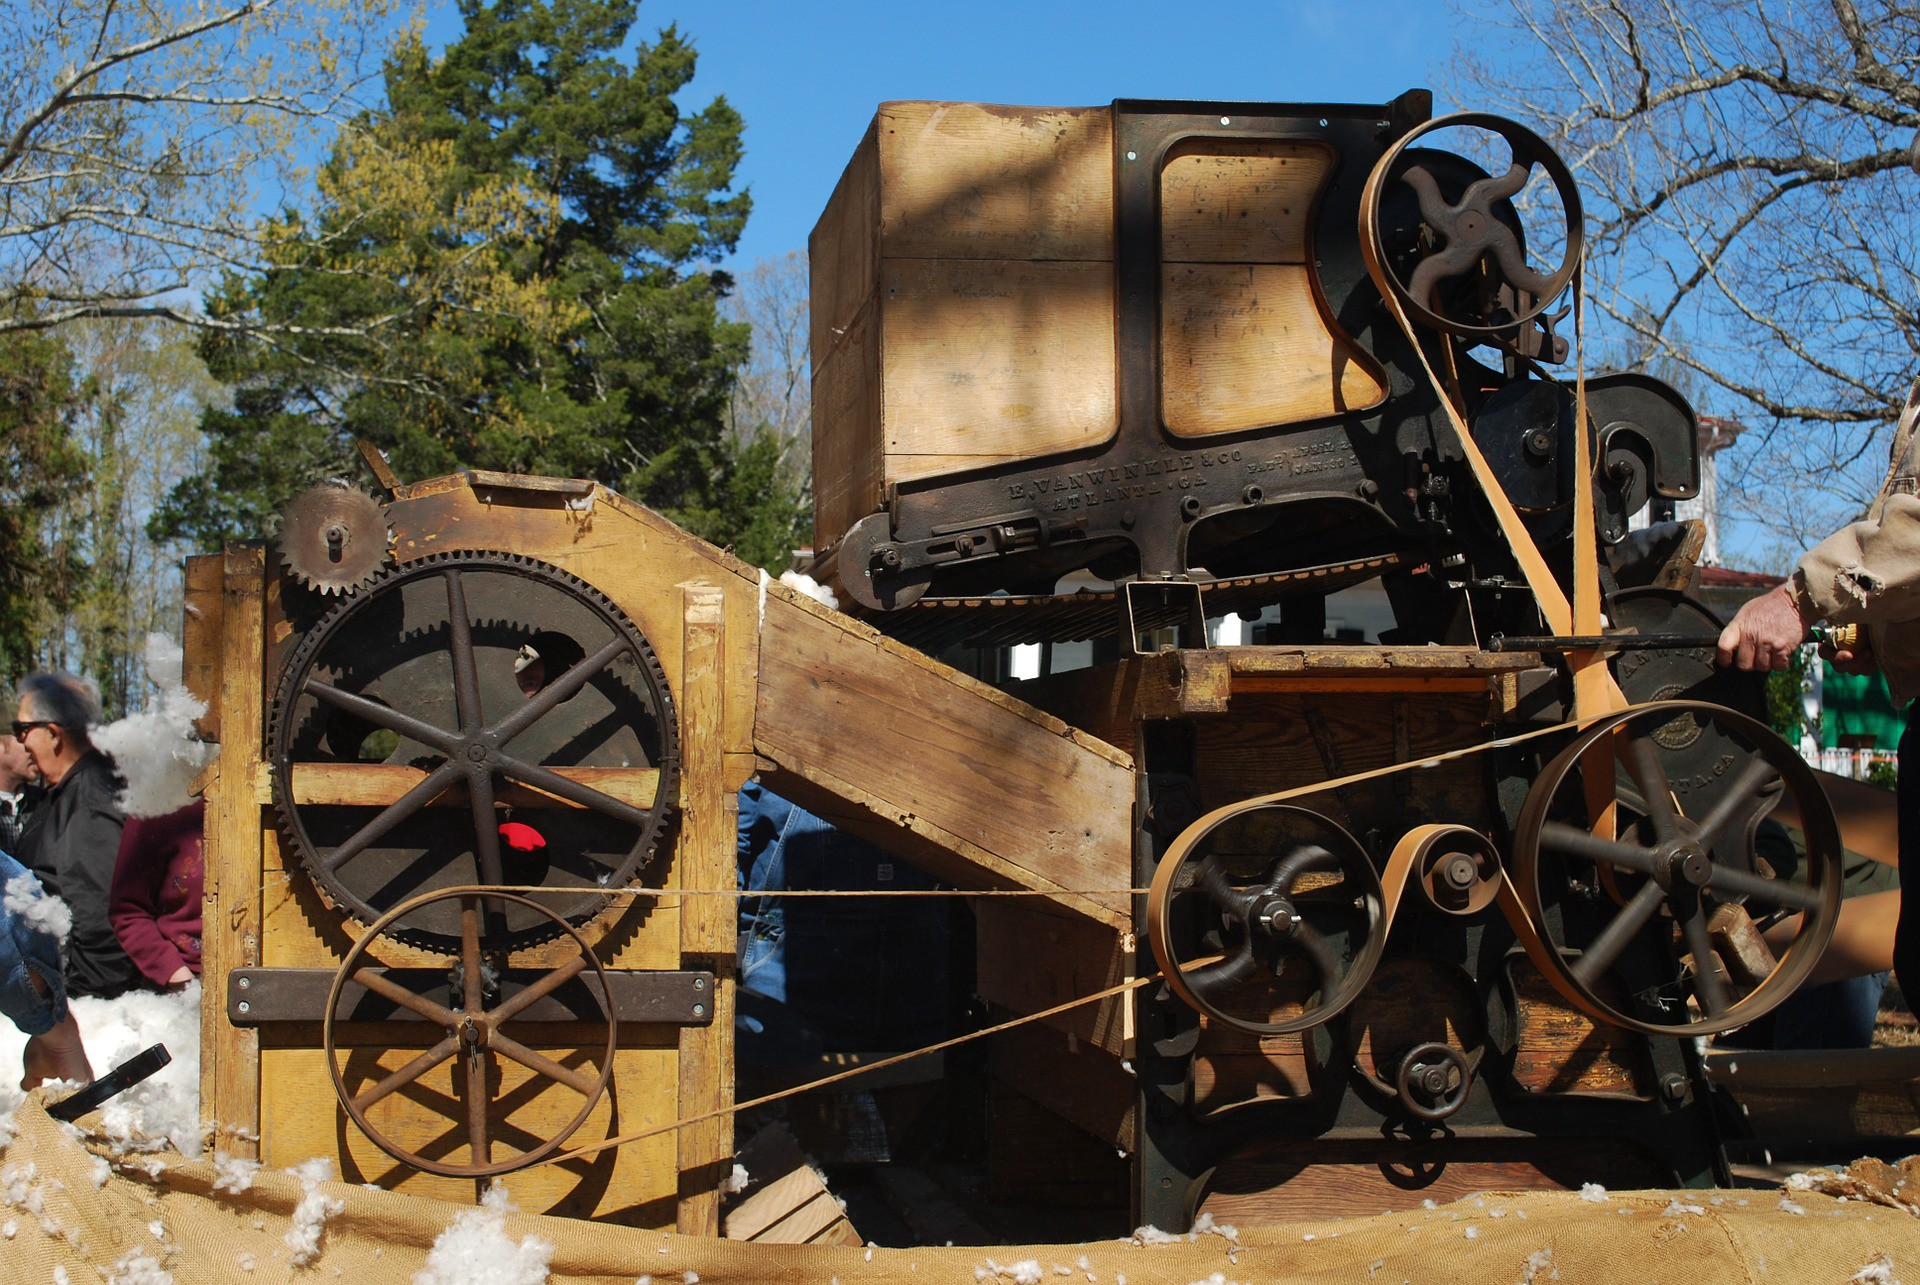 a cotton gin was a machine that removed seeds from cotton